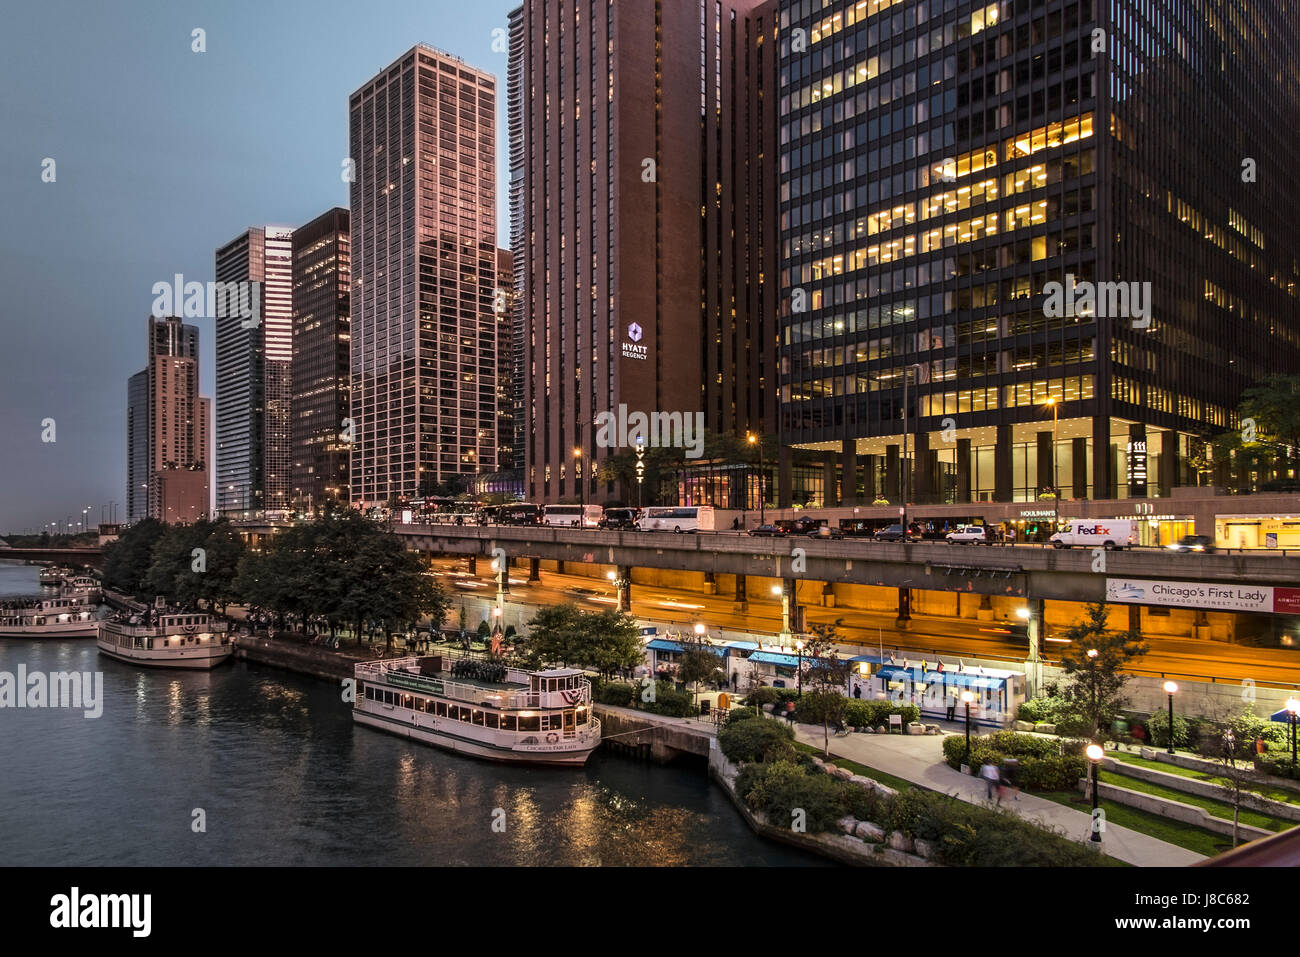 View of Chicago River late afternoon USA - Stock Image